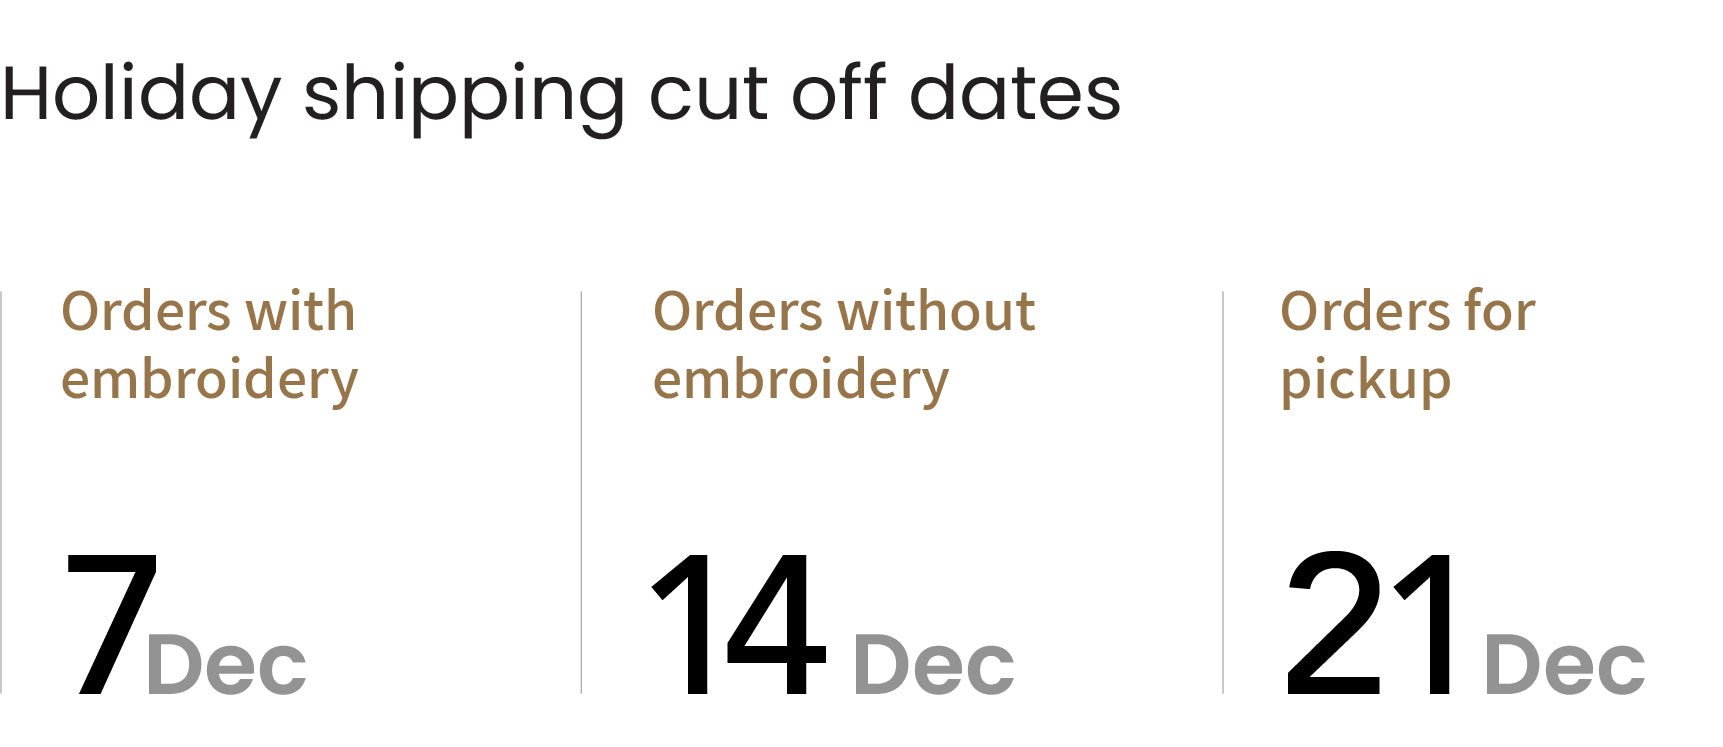 DTY shipping cut off dates